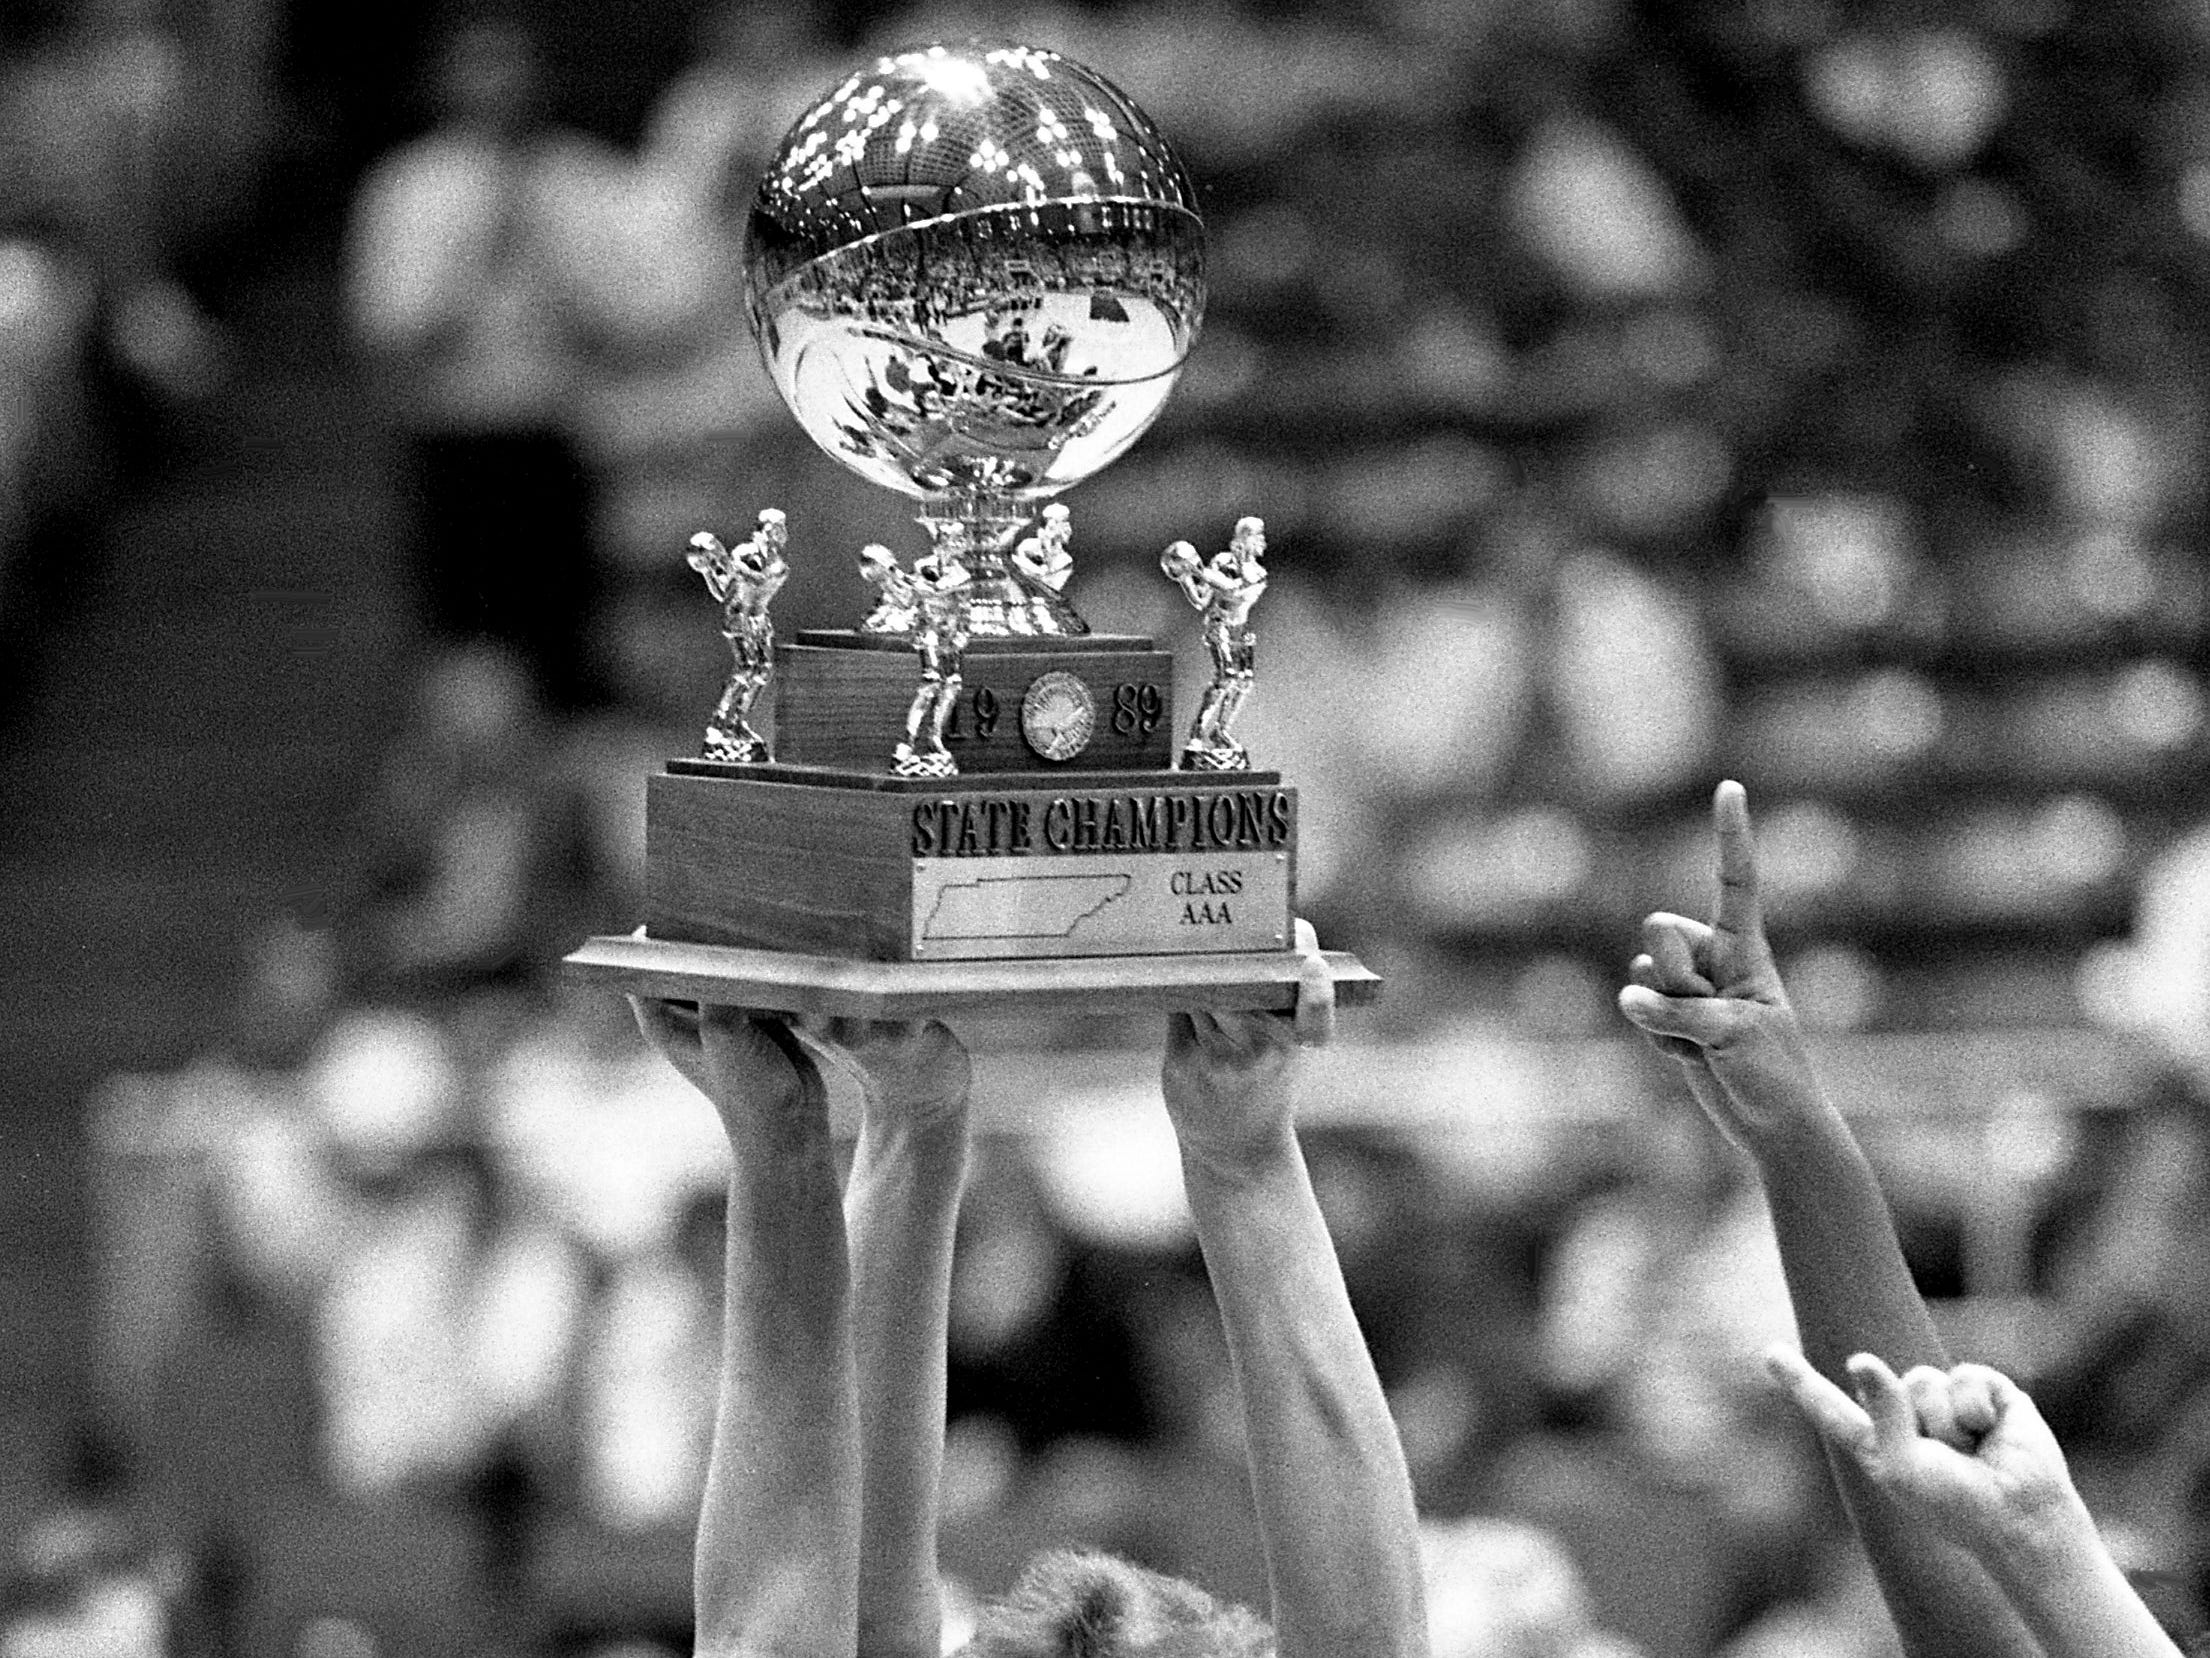 Tournament Most Valuable Player Misty Lamb (14) lifts Shelbyville High's Class AAA state championship trophy after their 55-47 victory over Oak Ridge at MTSU's Murphy Center in Murfreesboro on March 11, 1989. The USA Today No. 1 nationally ranked Shelbyville finished with a 36-0 record and won their second state title in four years.